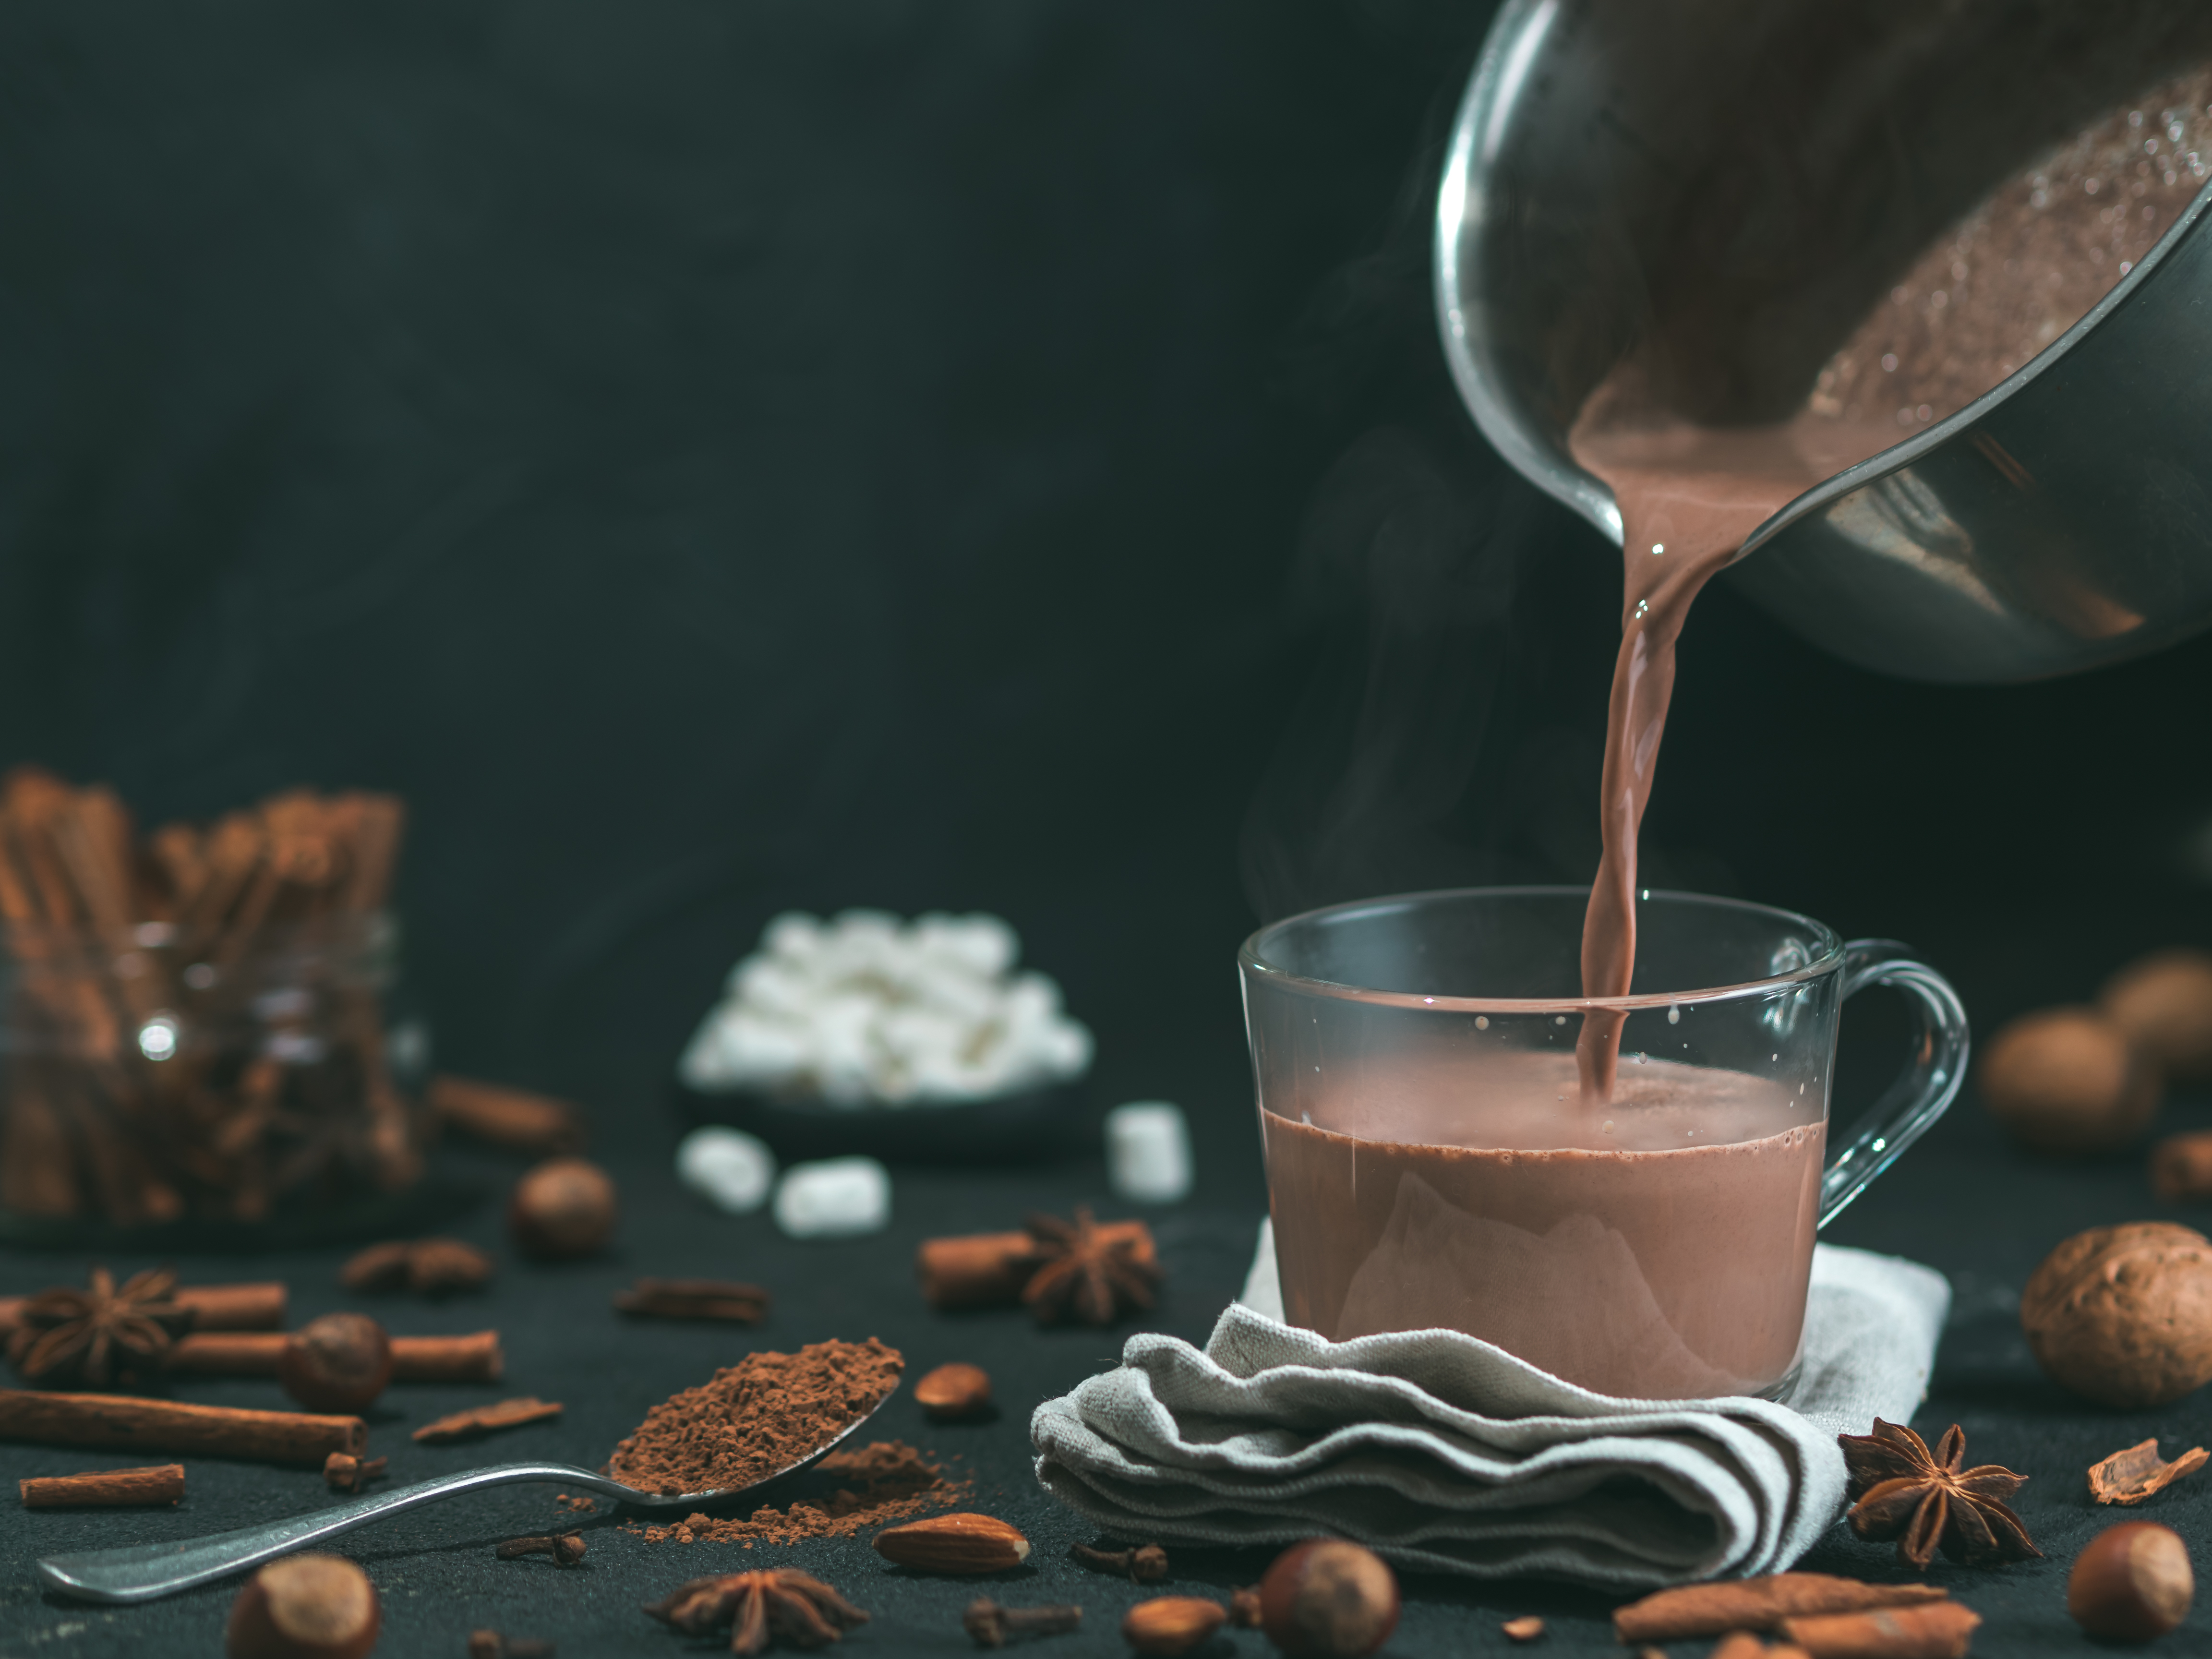 Pouring hot chocolate from a pan to a cup